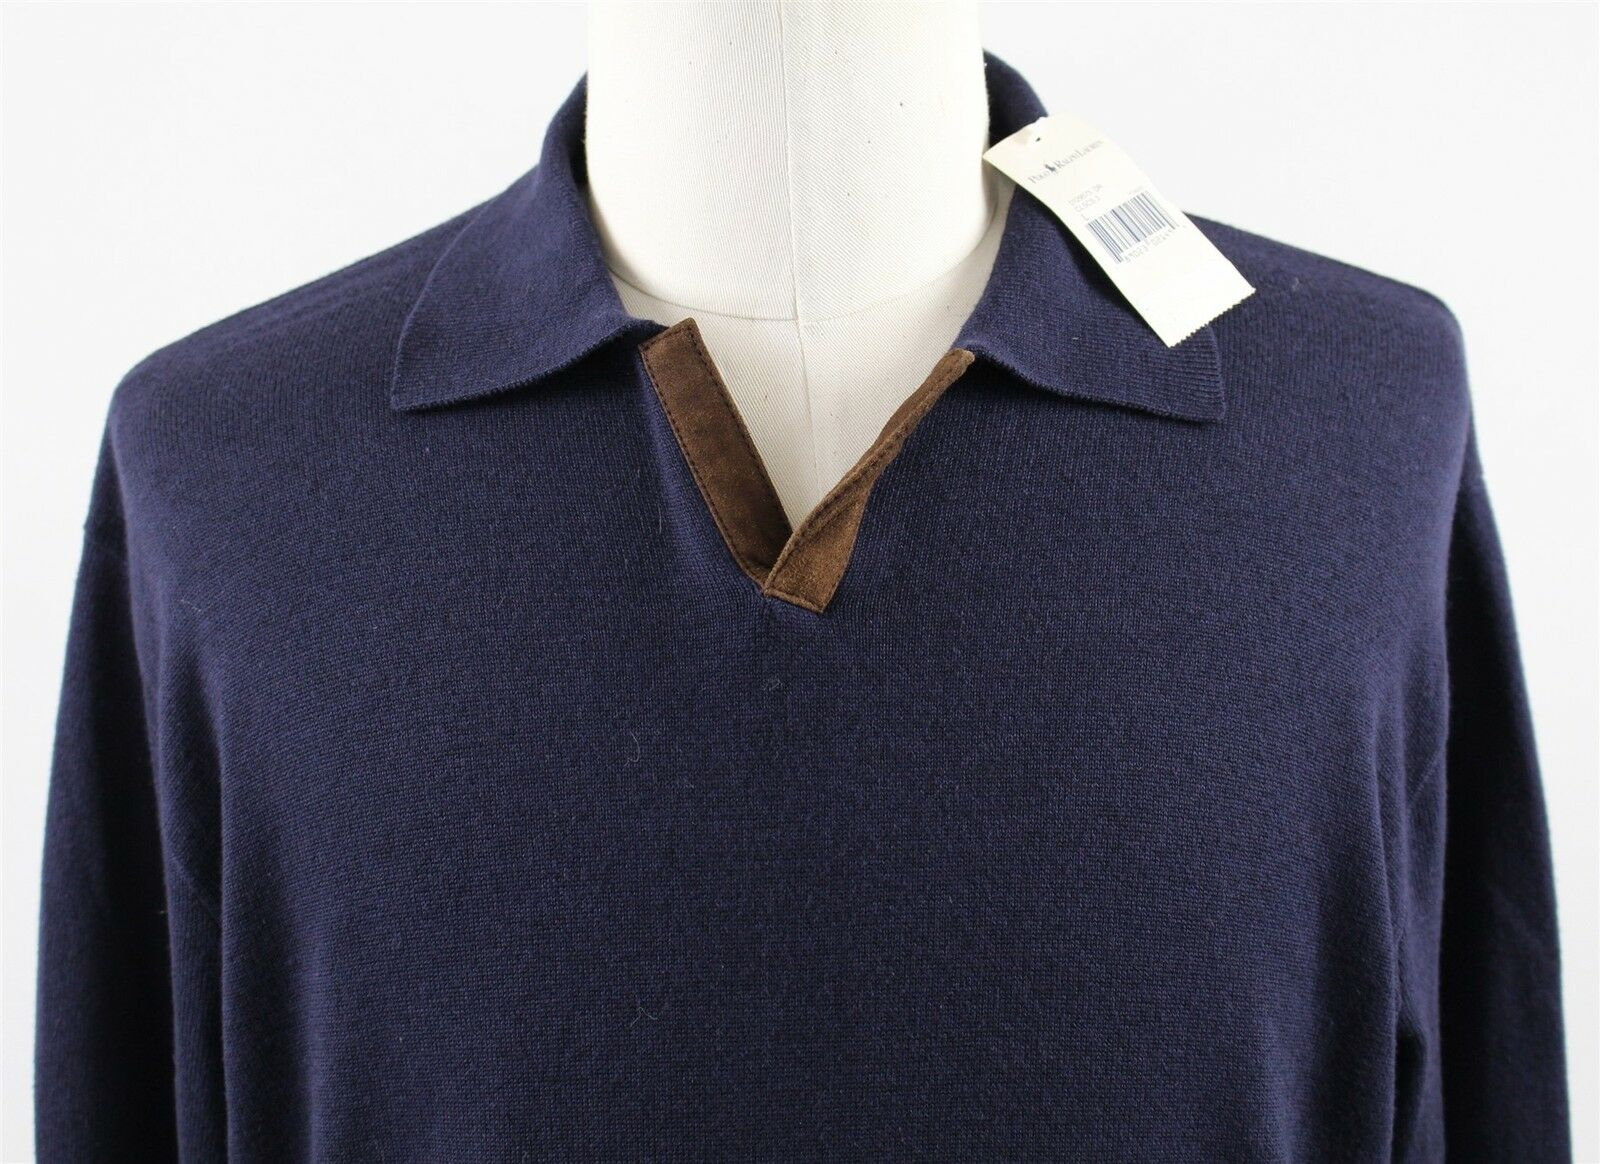 NWT Polo Ralph Lauren Wool Cotton Polo Sweater  Herren LARGE Blau Pullover